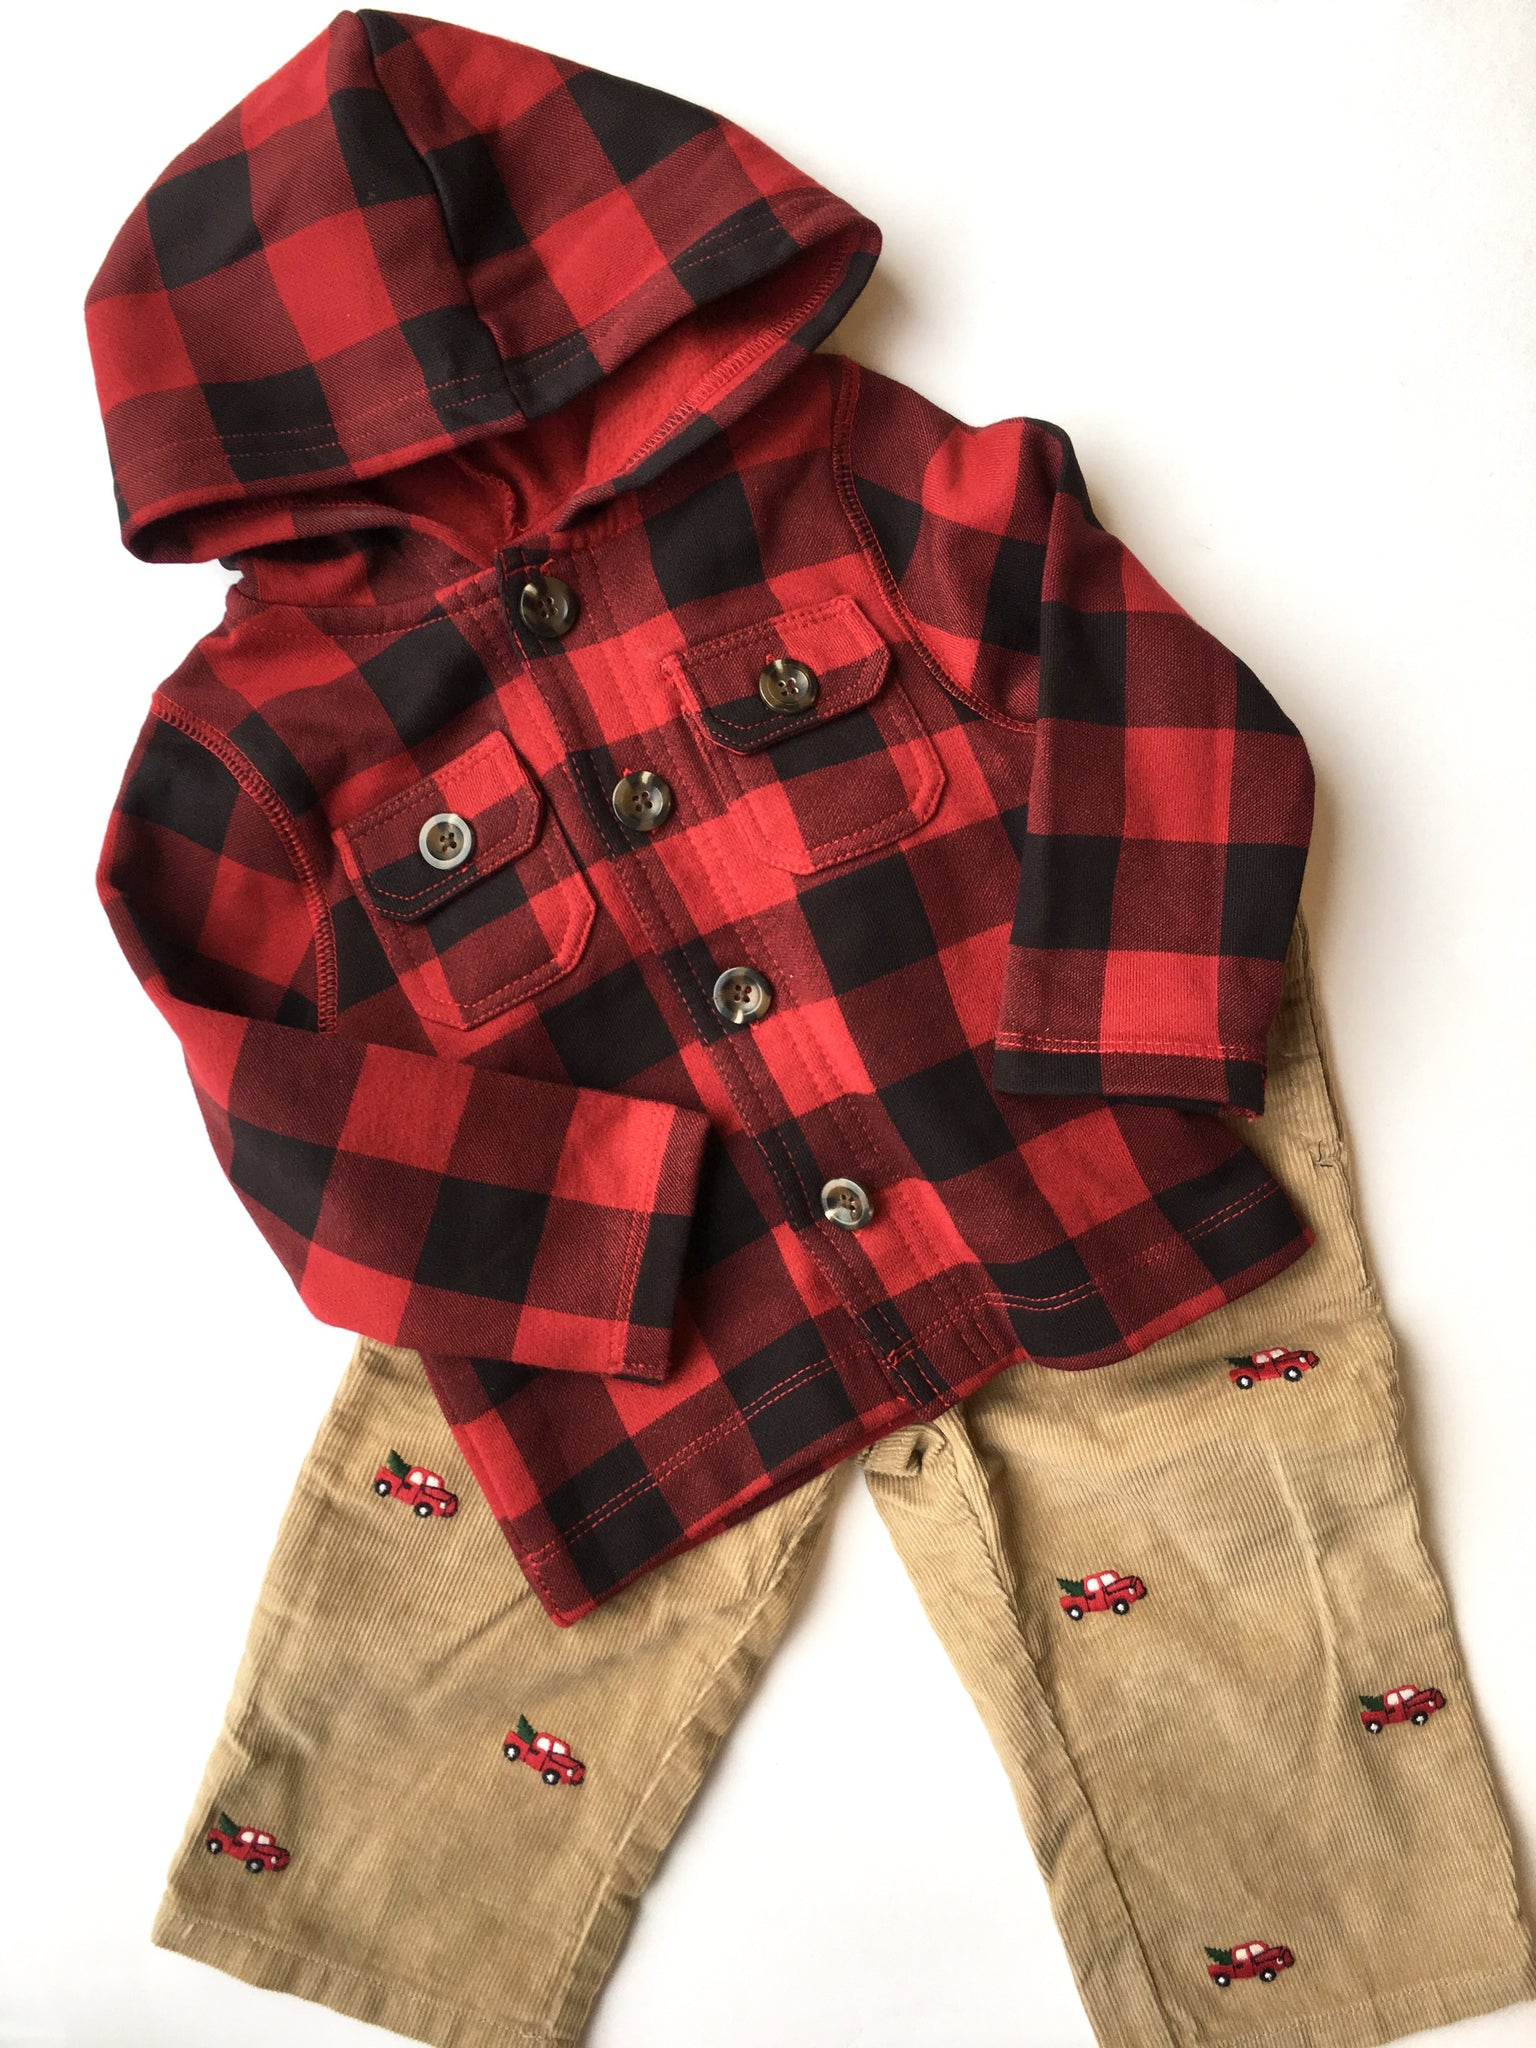 Joe Fresh Shirt + Gymboree Cords  | 12-18M